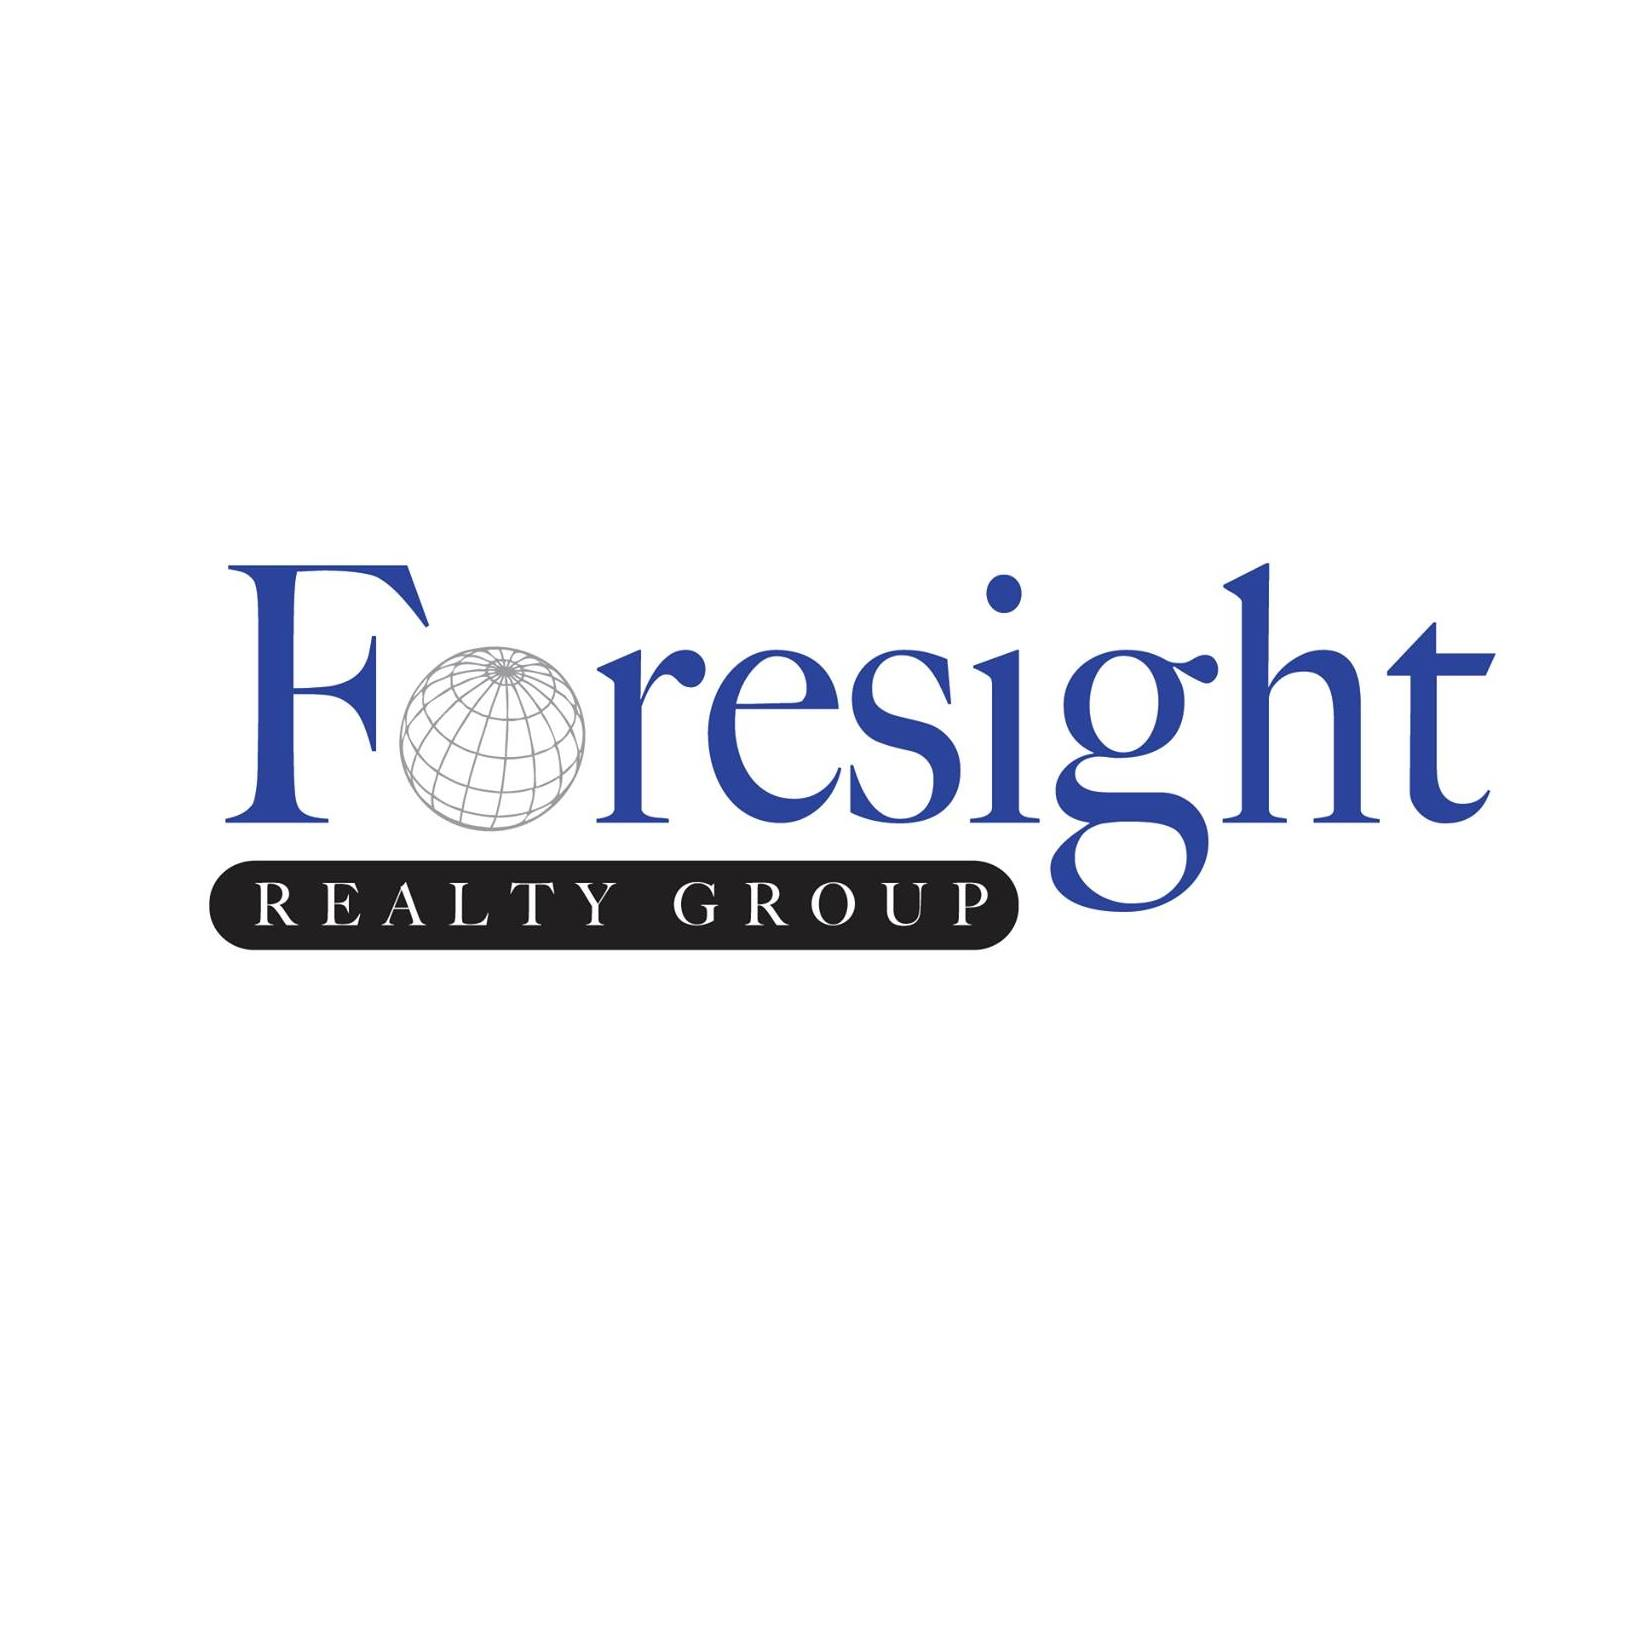 Foresight Realty Group Corp.